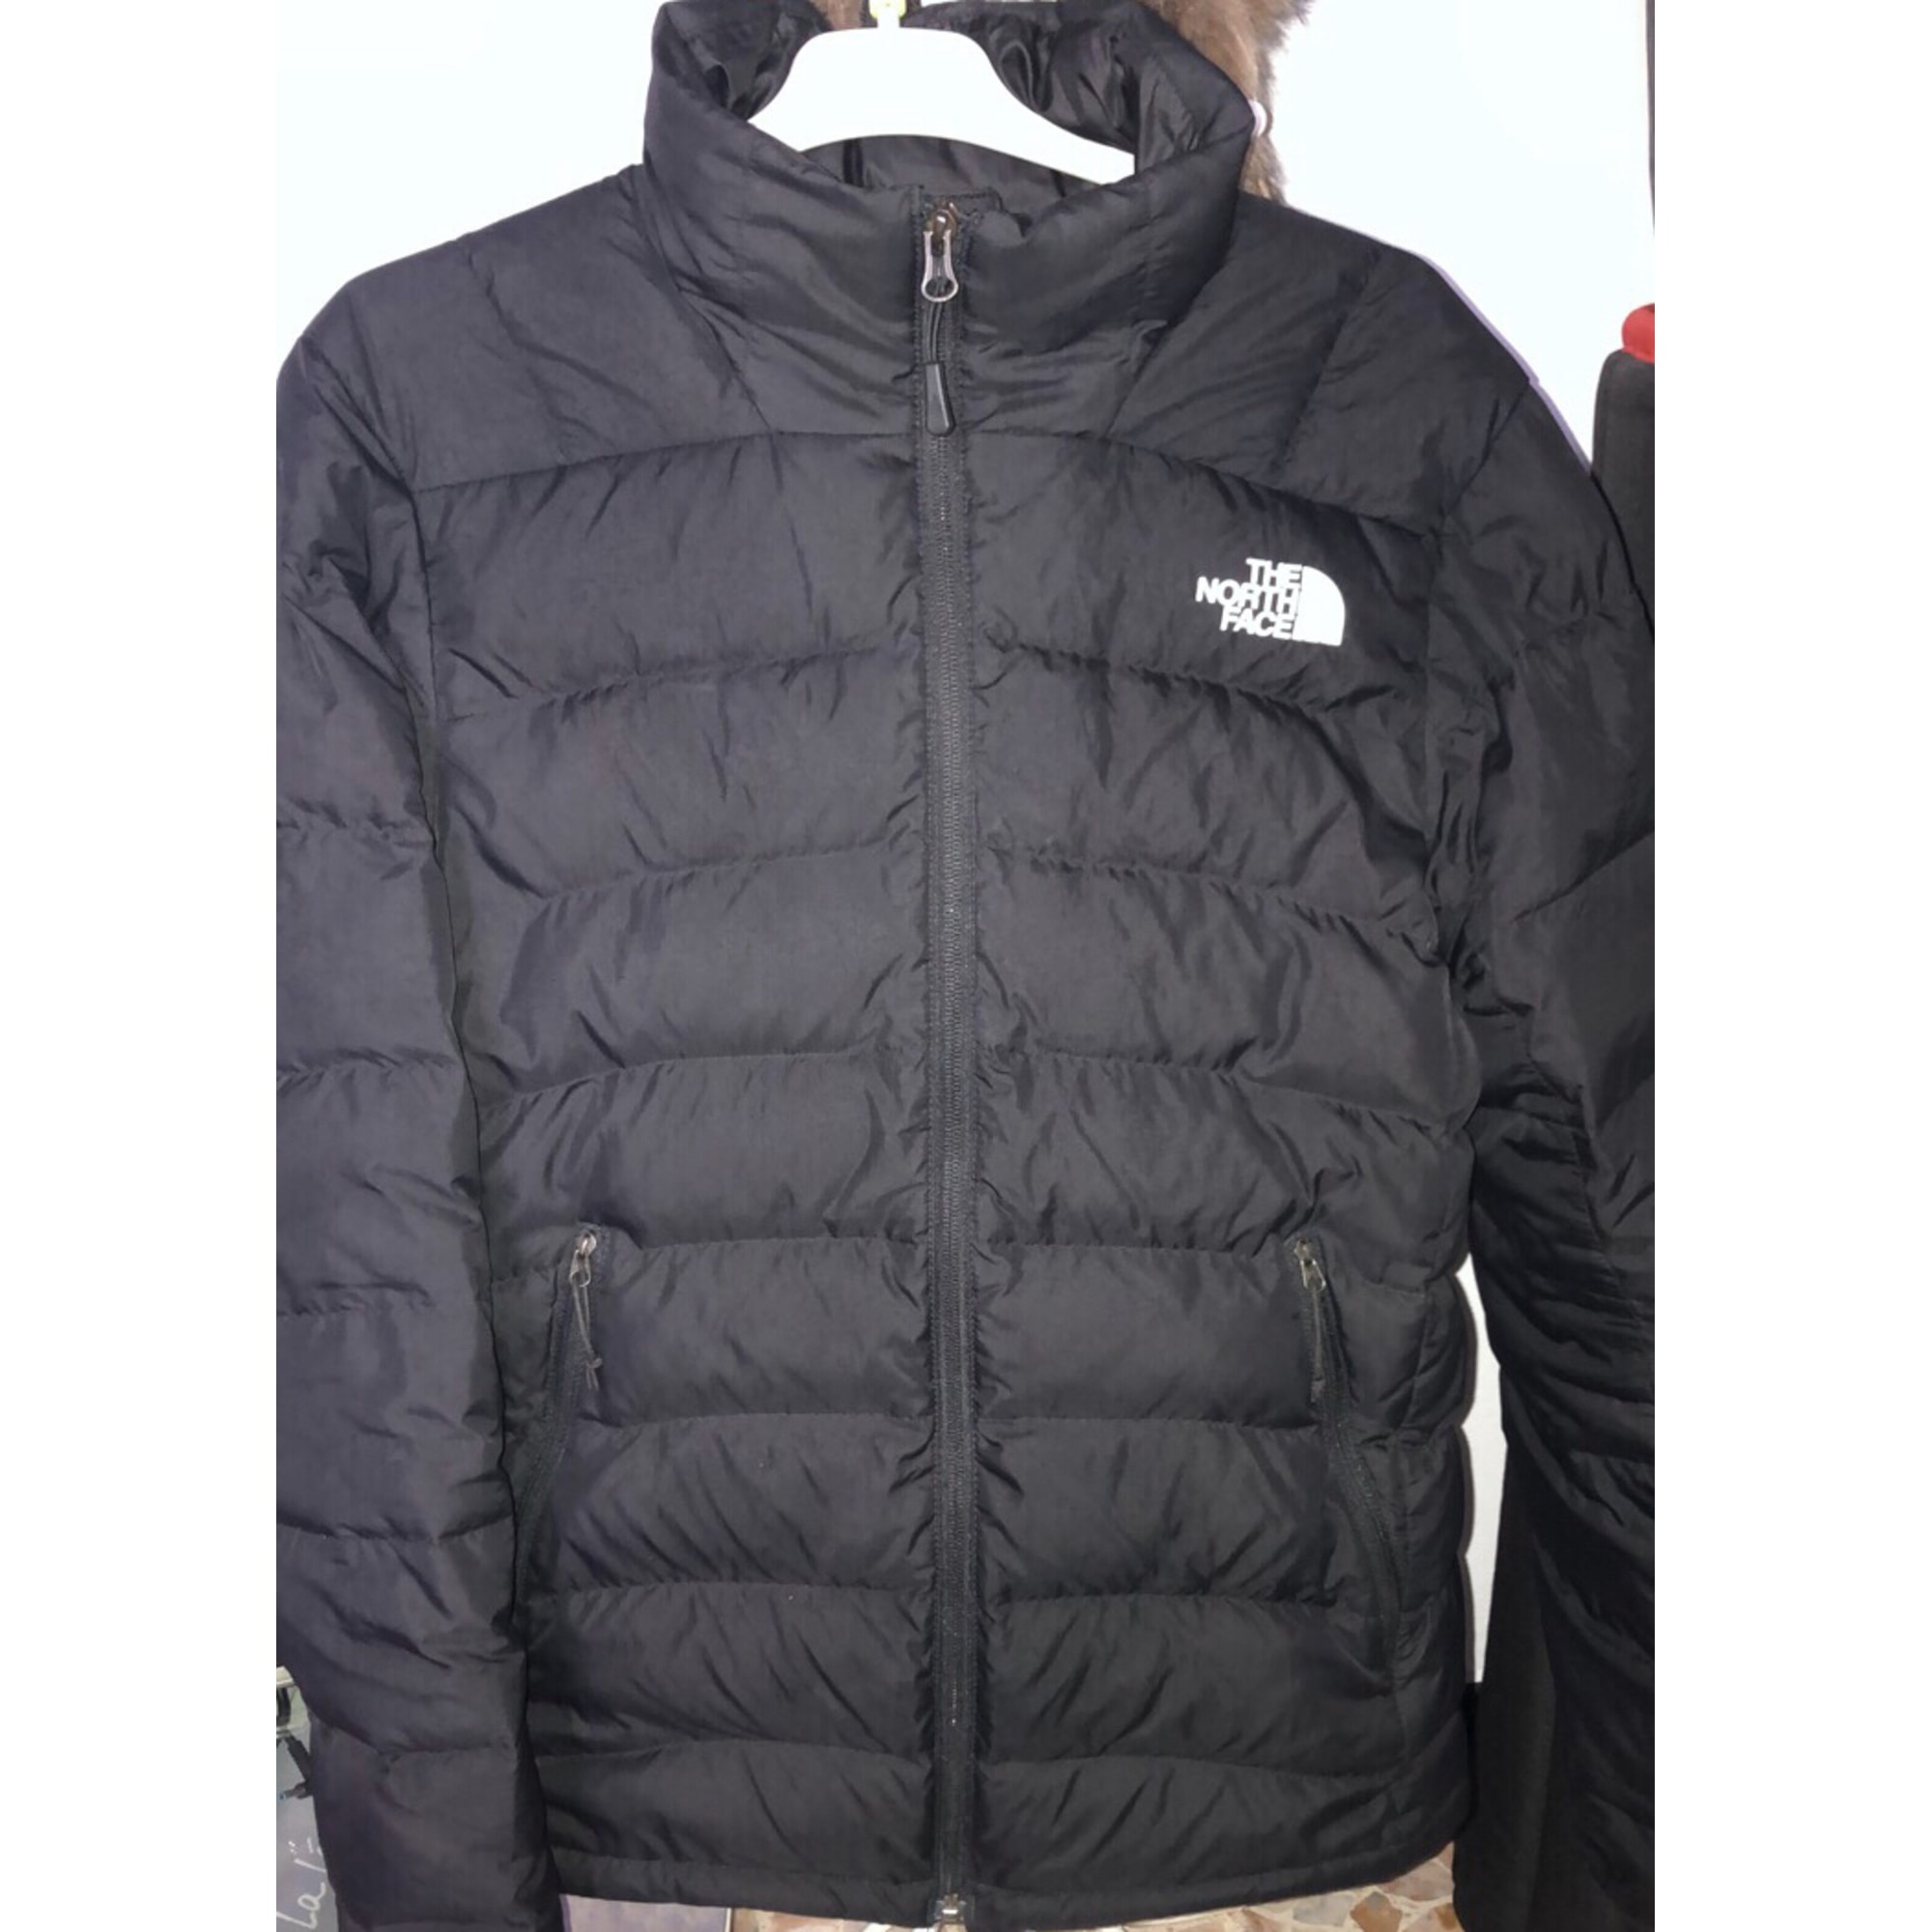 155083eac9 Doudoune THE NORTH FACE 46 (S) noir - 8532113